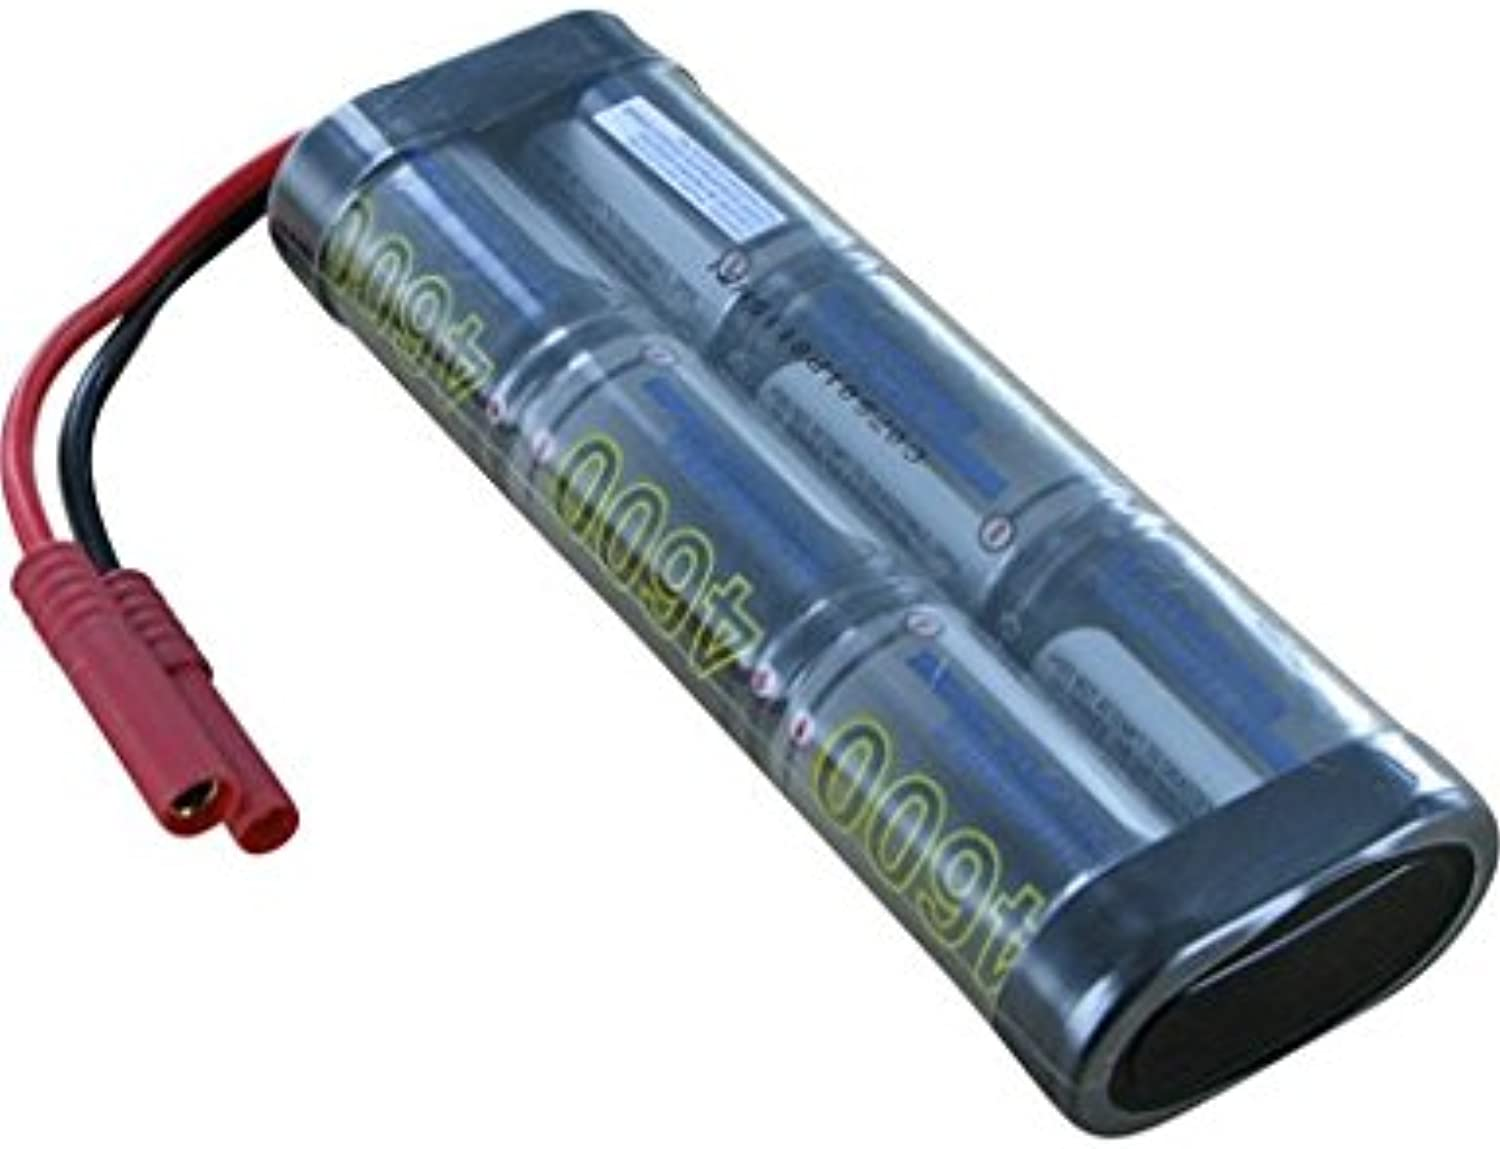 Battery type ABOUTBATTERIES CSNS460D37C118, 7.2V, 4600mAh, NiMH